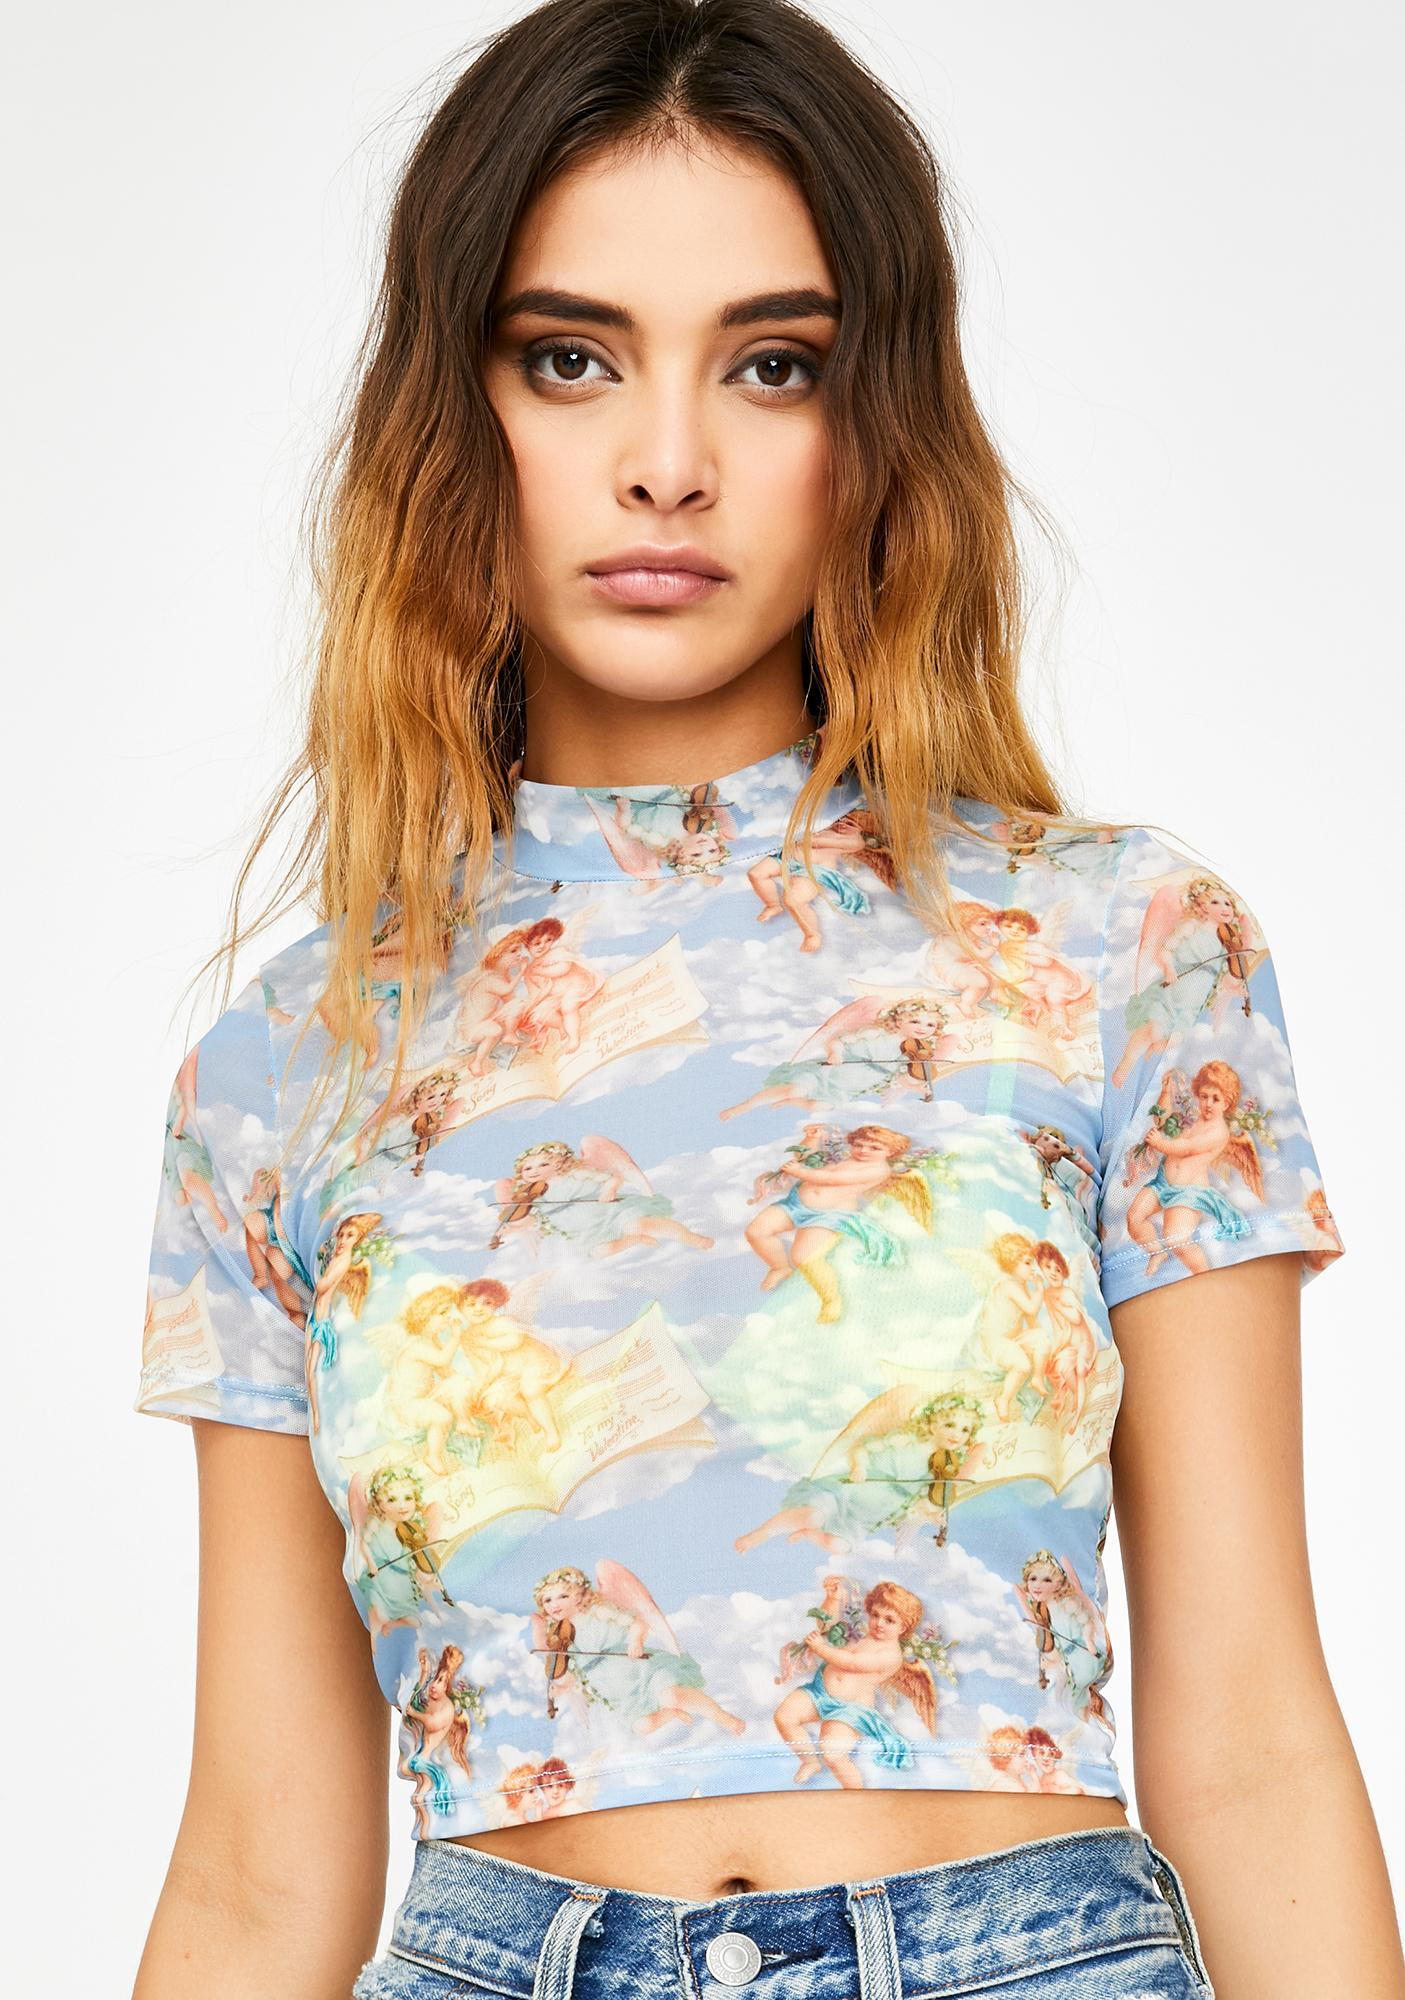 Kiki Riki Friend Or Foe Cherub Crop Top